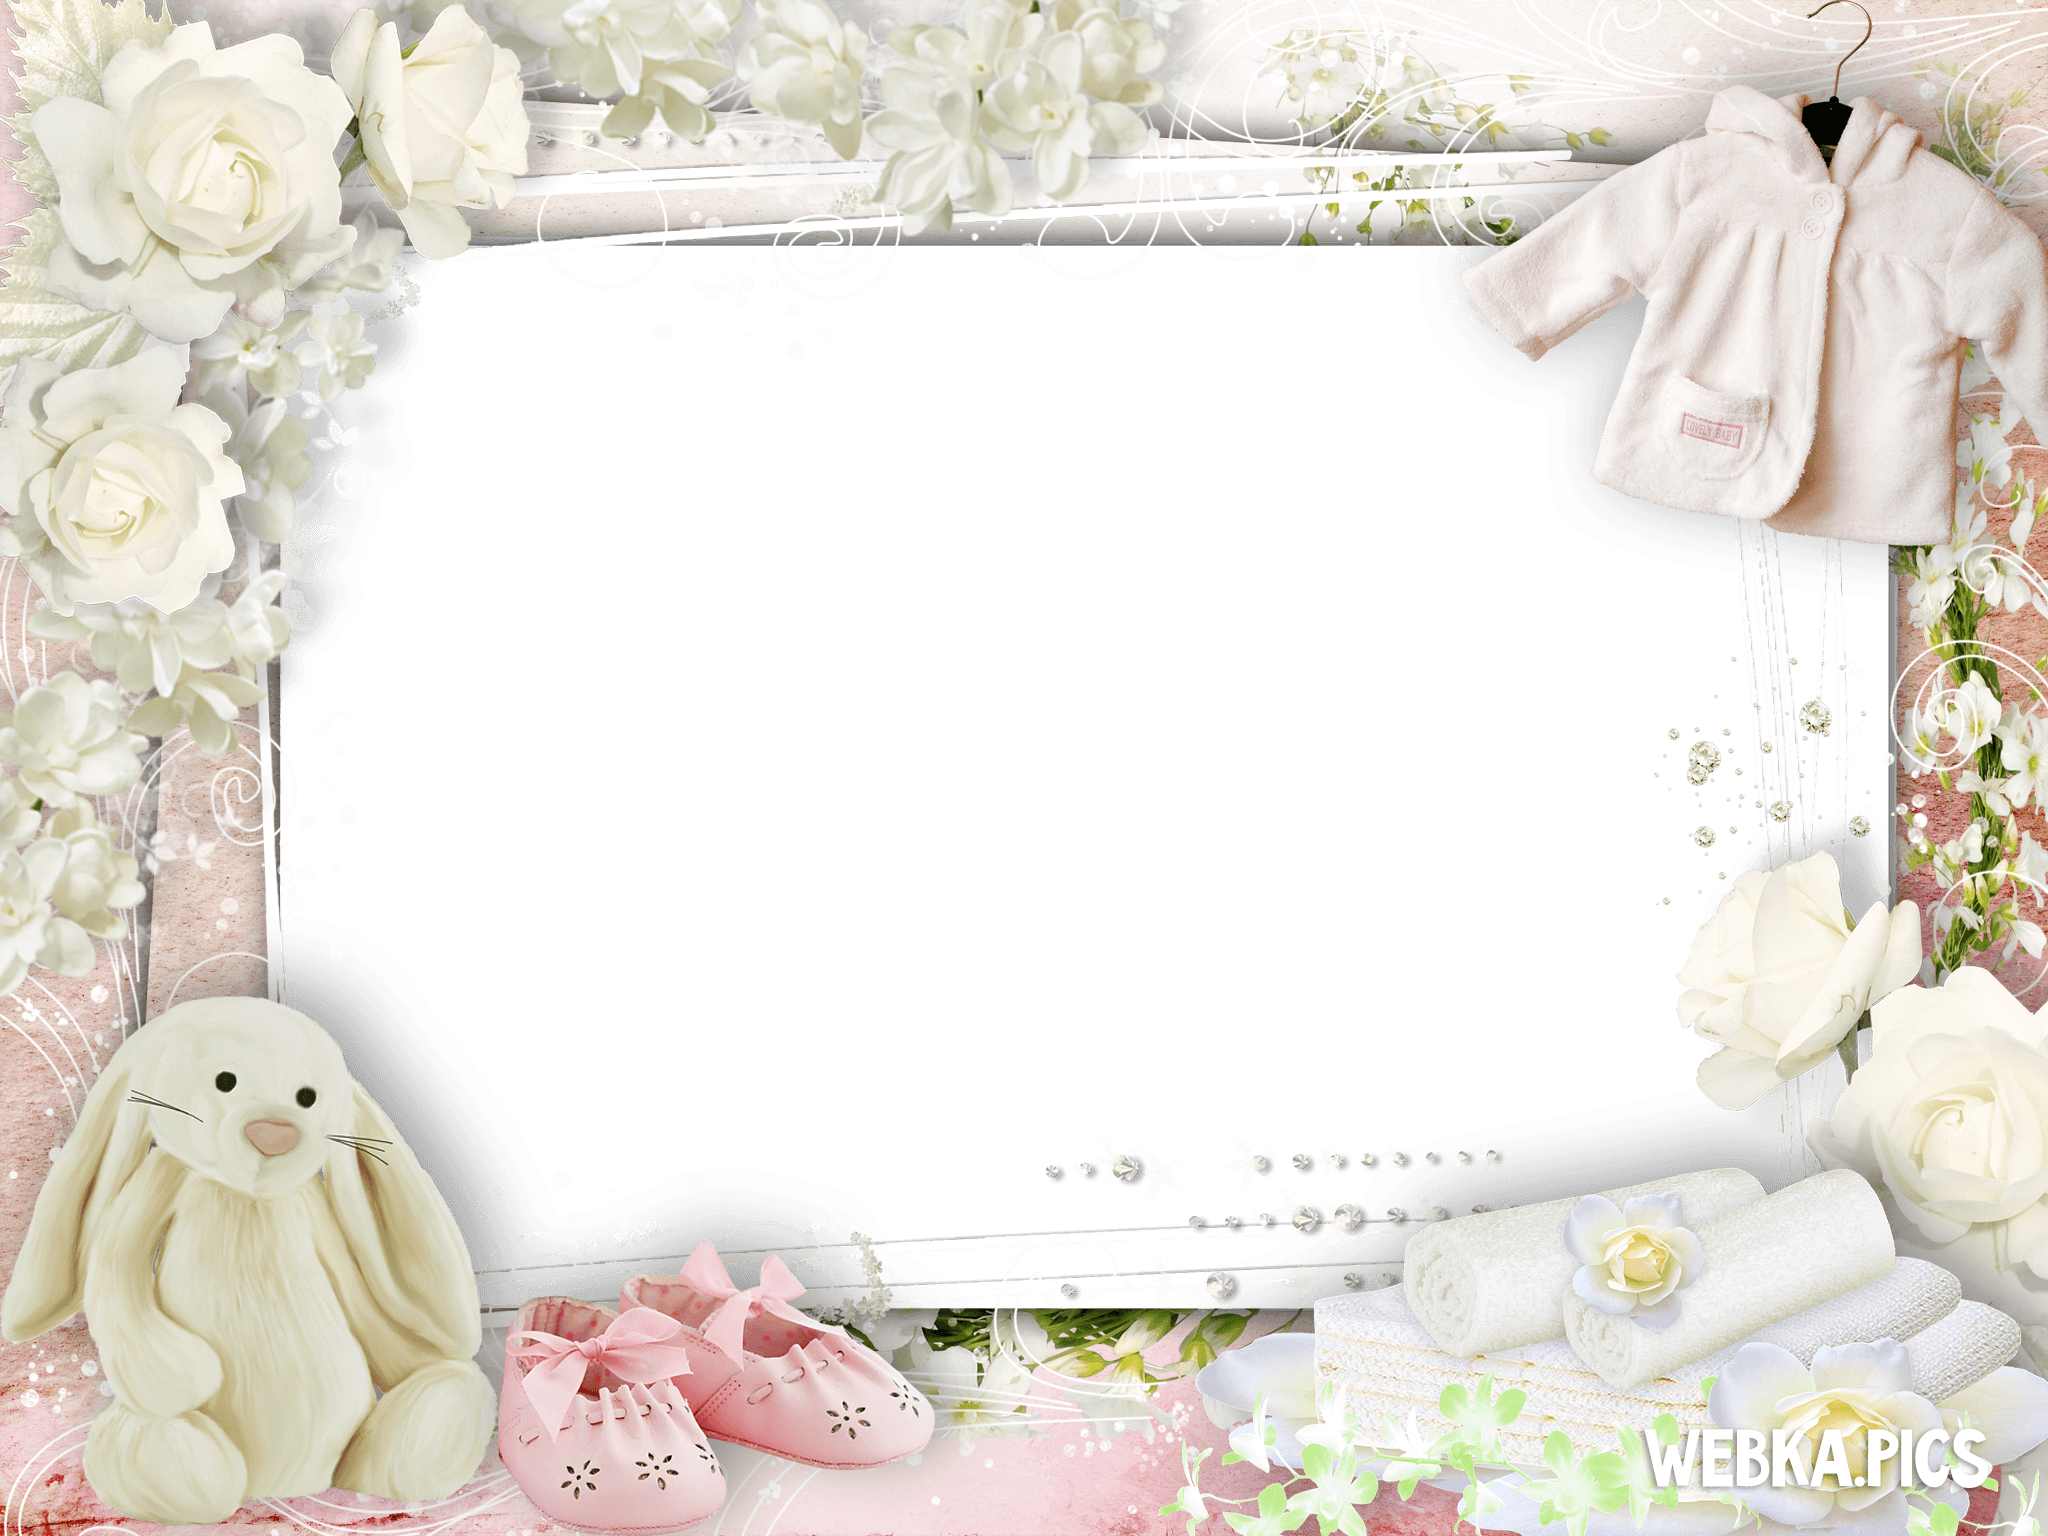 Baby picture frames - Photo Editor Online! Photo Effects Online Baby photo frames online free